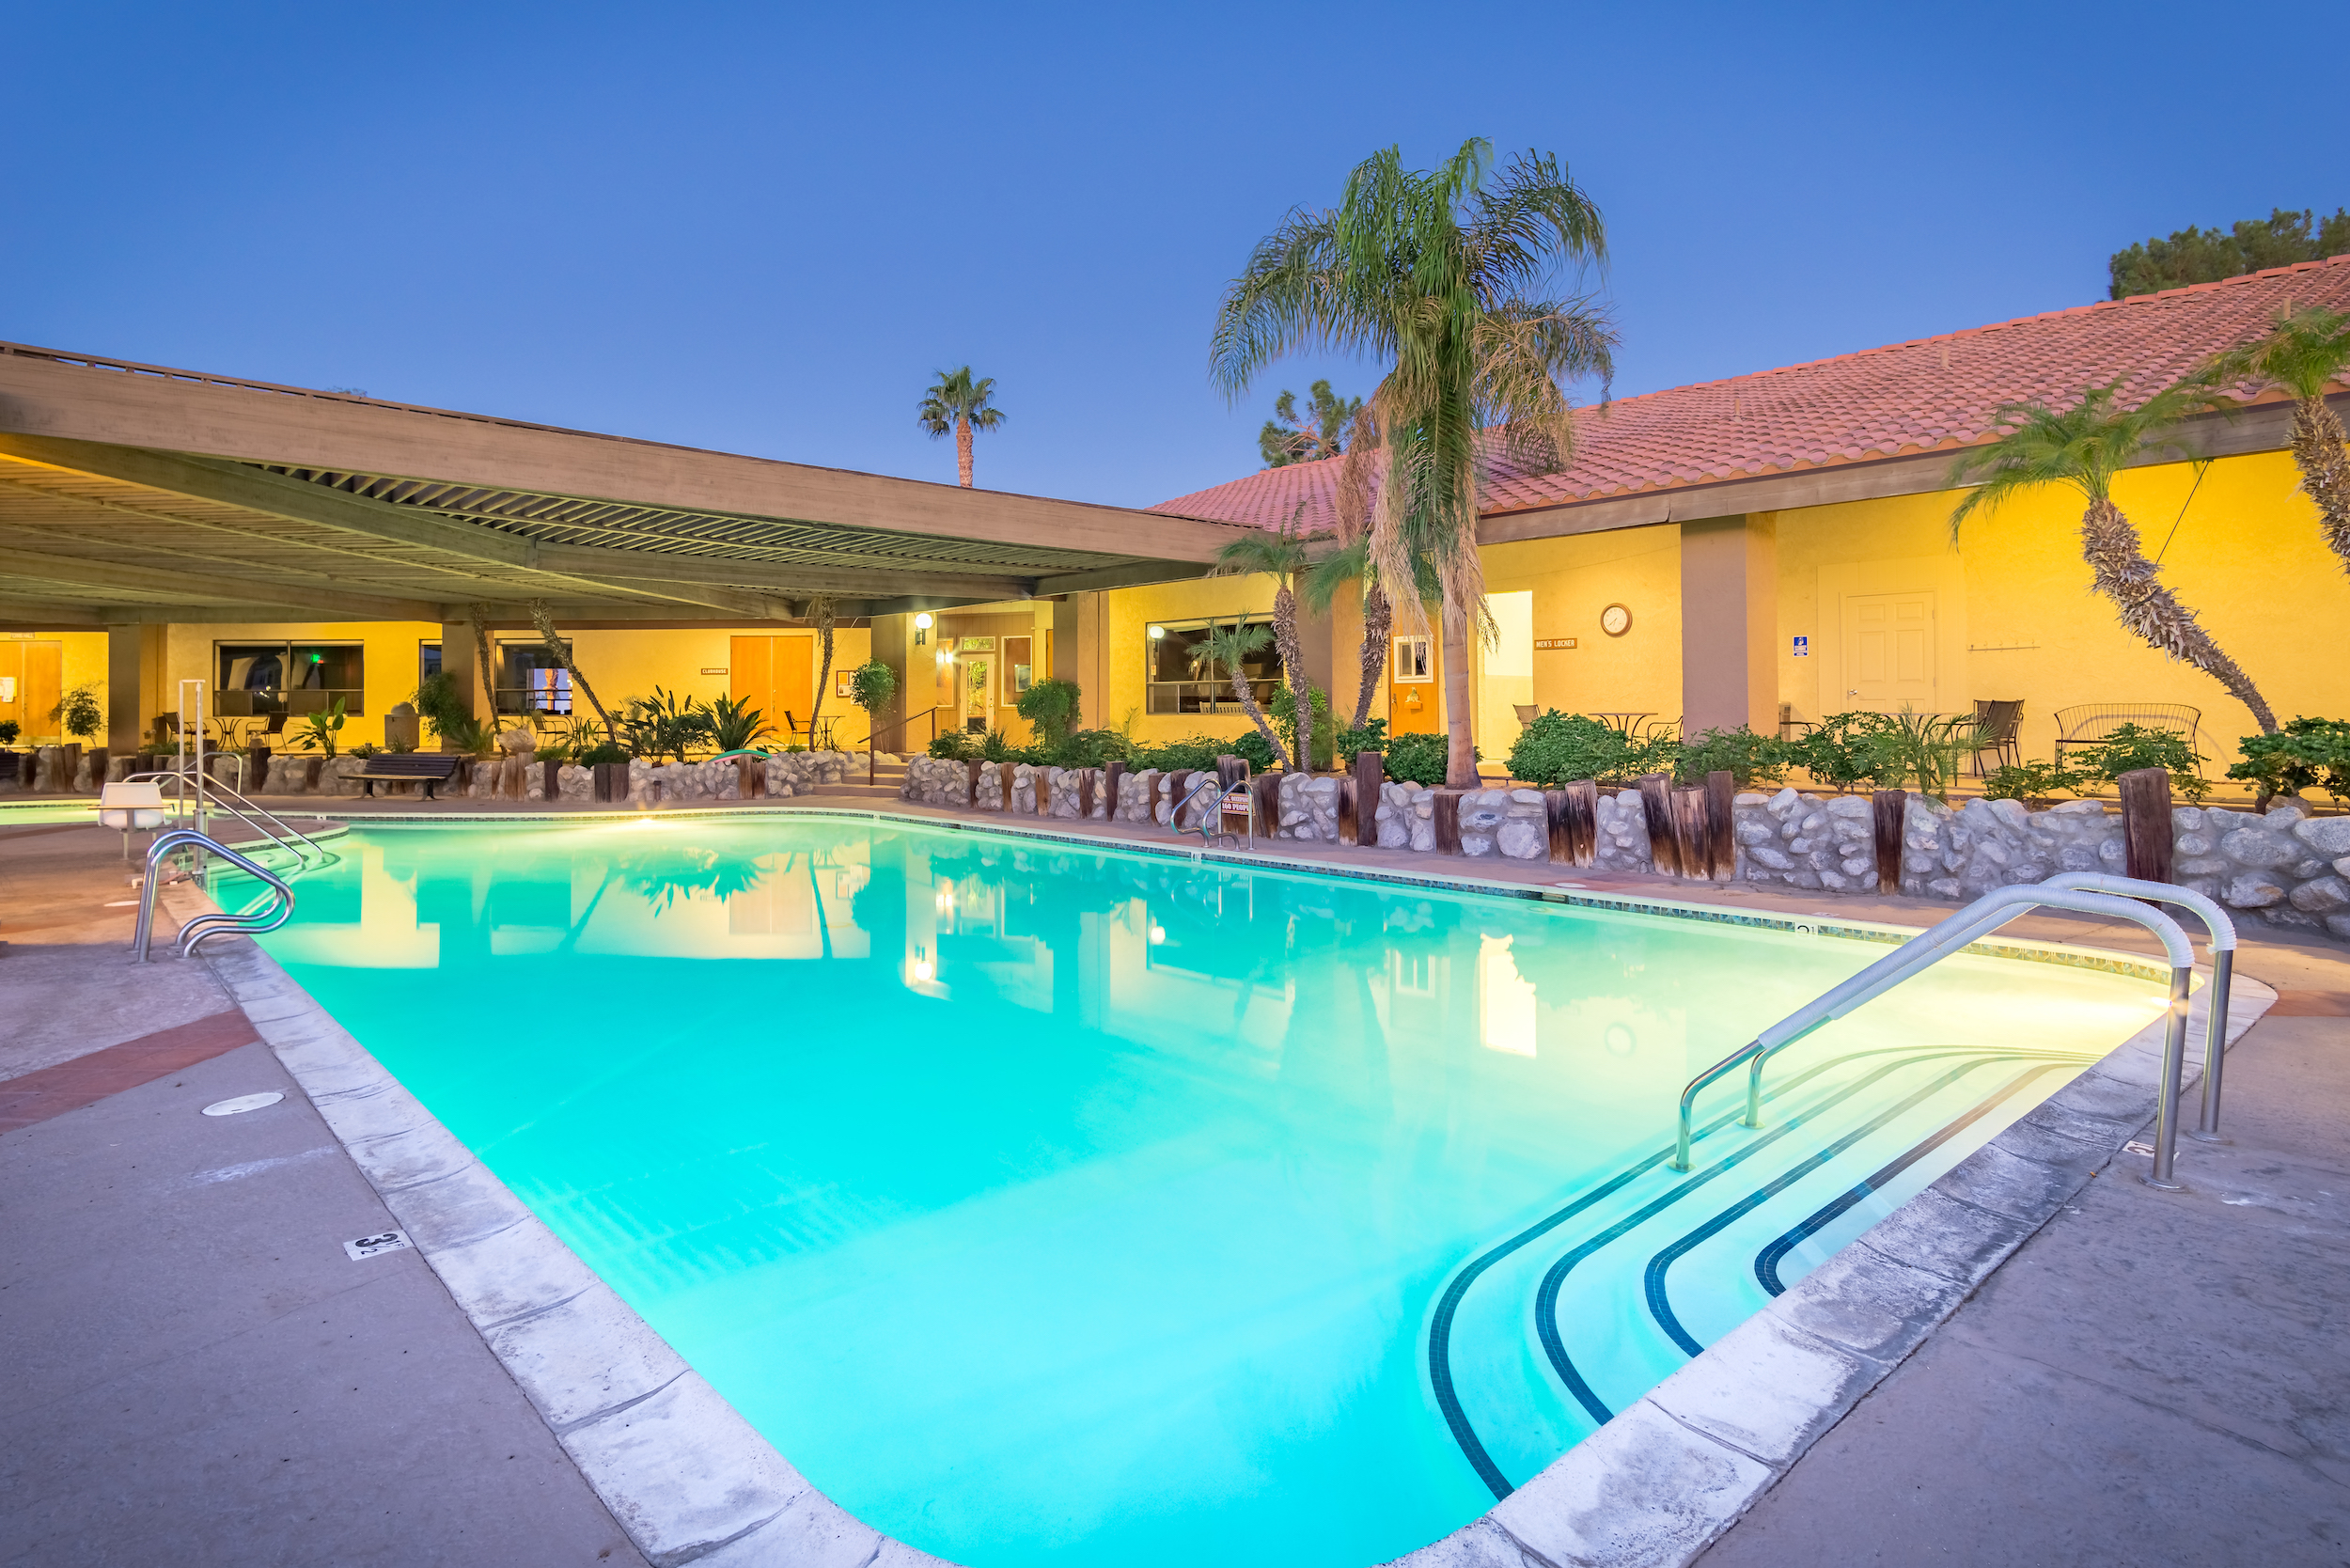 A Greater Palm Springs Area Resort - Focus on a healthy lifestyle in an active community for 55 & better friends. With so much to do, it's easy to keep moving and making the most of your golden years.